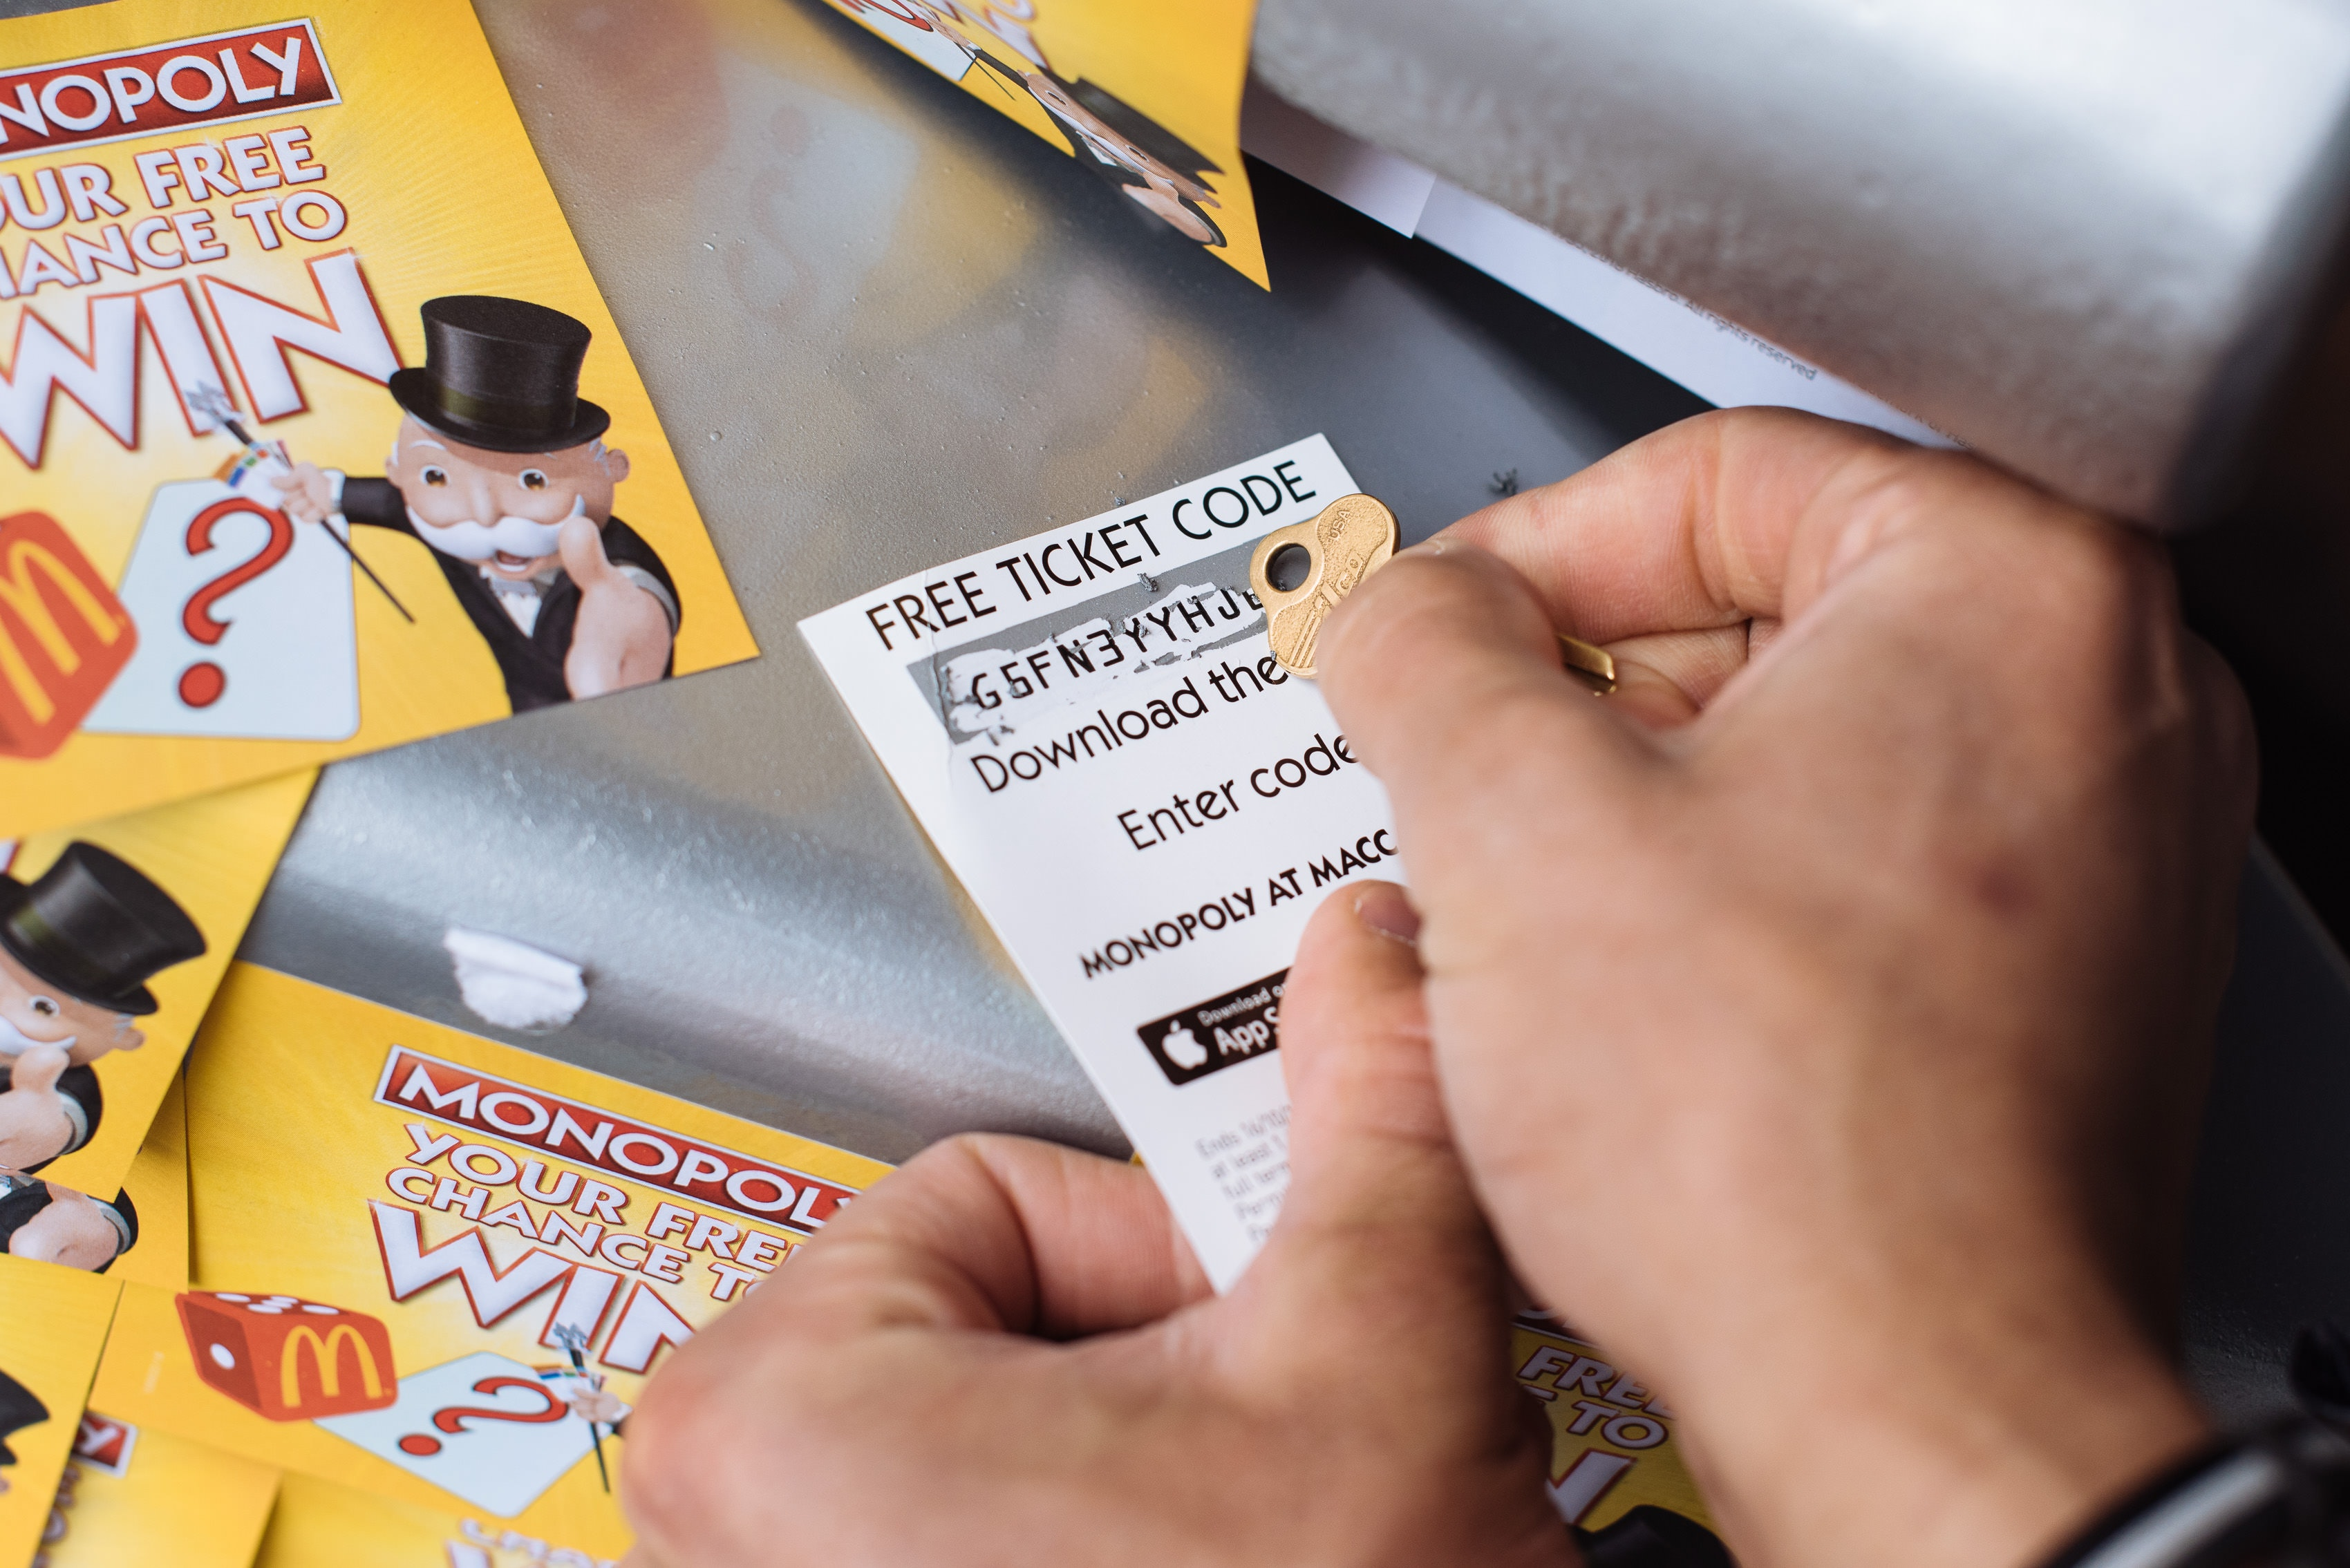 Mcdonalds monopoly 2018 instant win free attraction pass